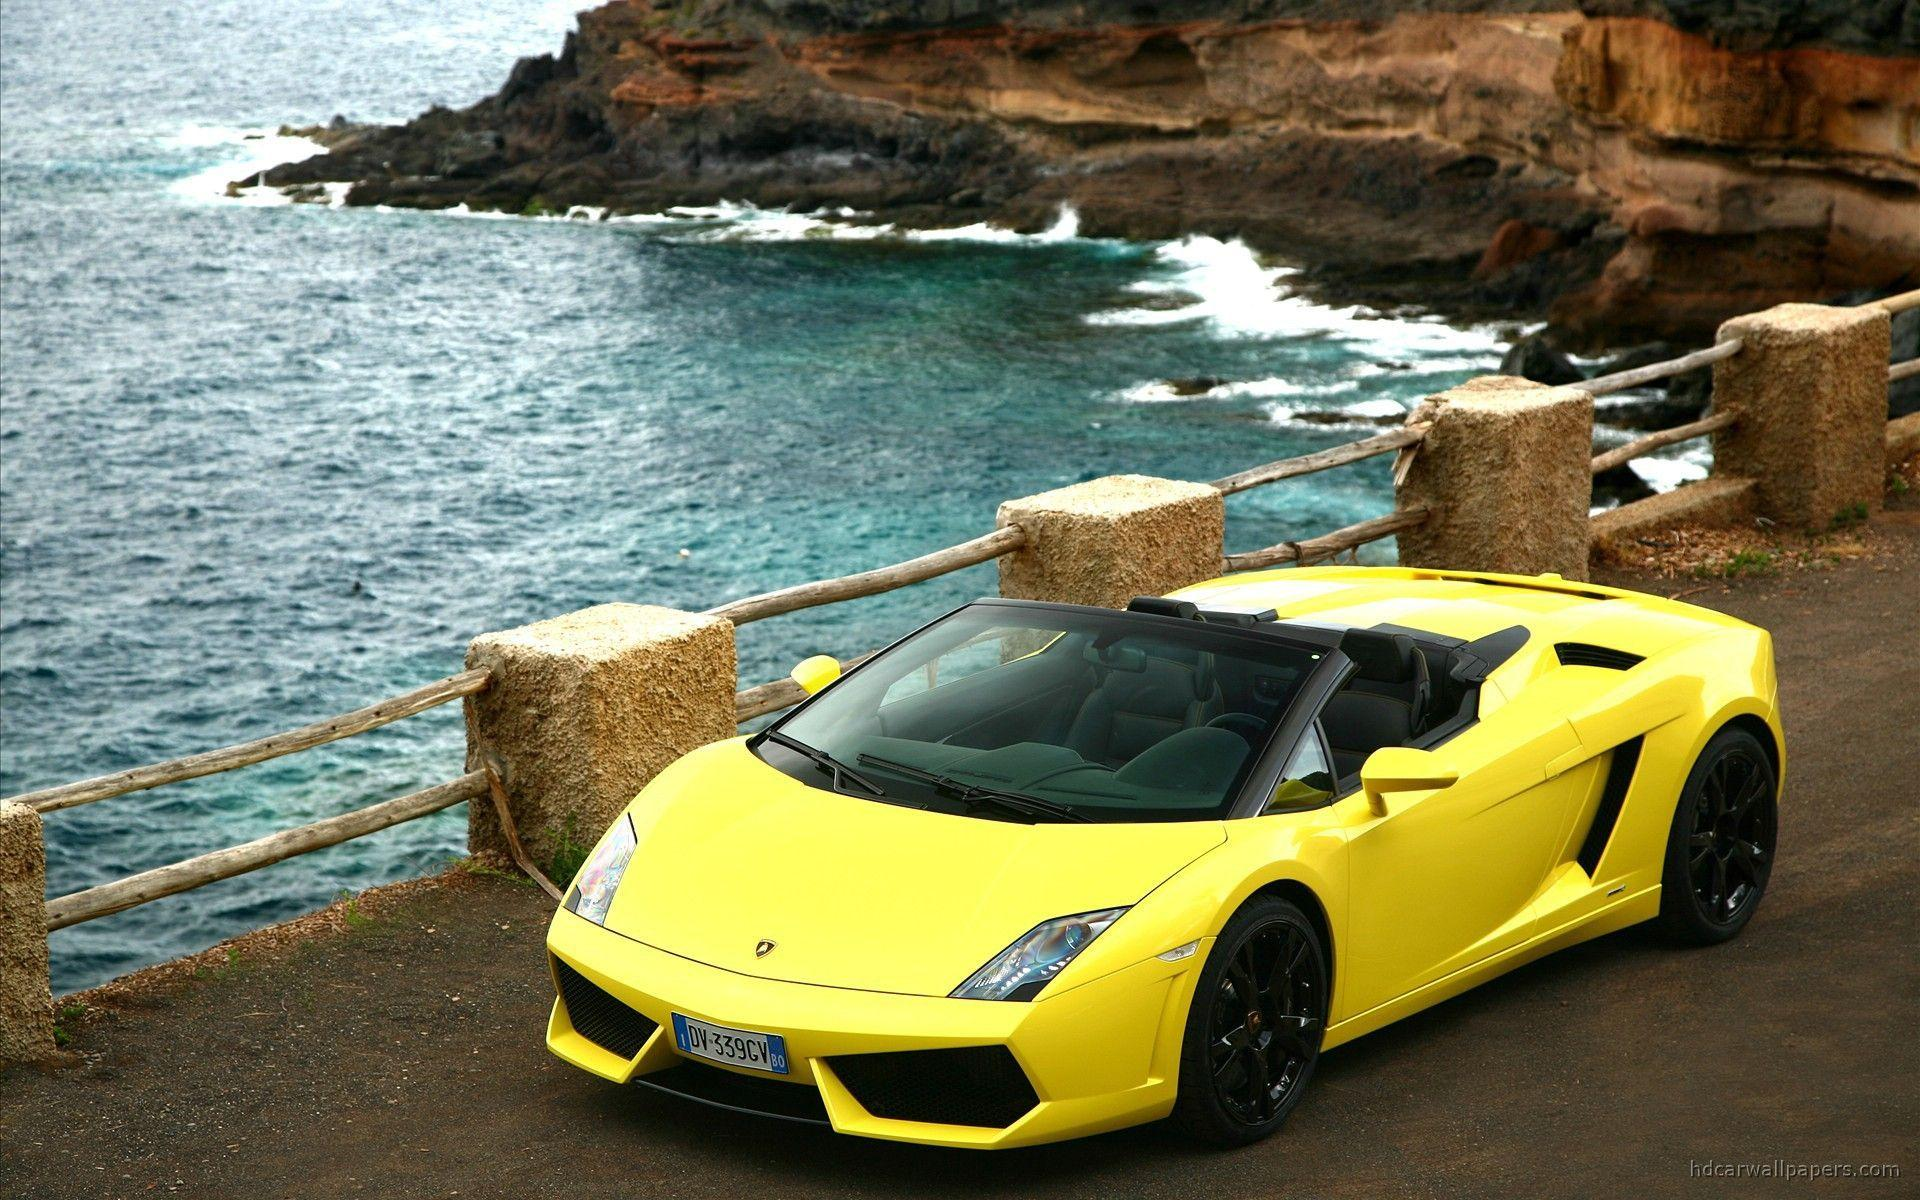 2009 lamborghini gallardo lp560 4 spyder 2 wallpapers hd wallpapers - Lamborghini Gallardo Wallpaper Blue